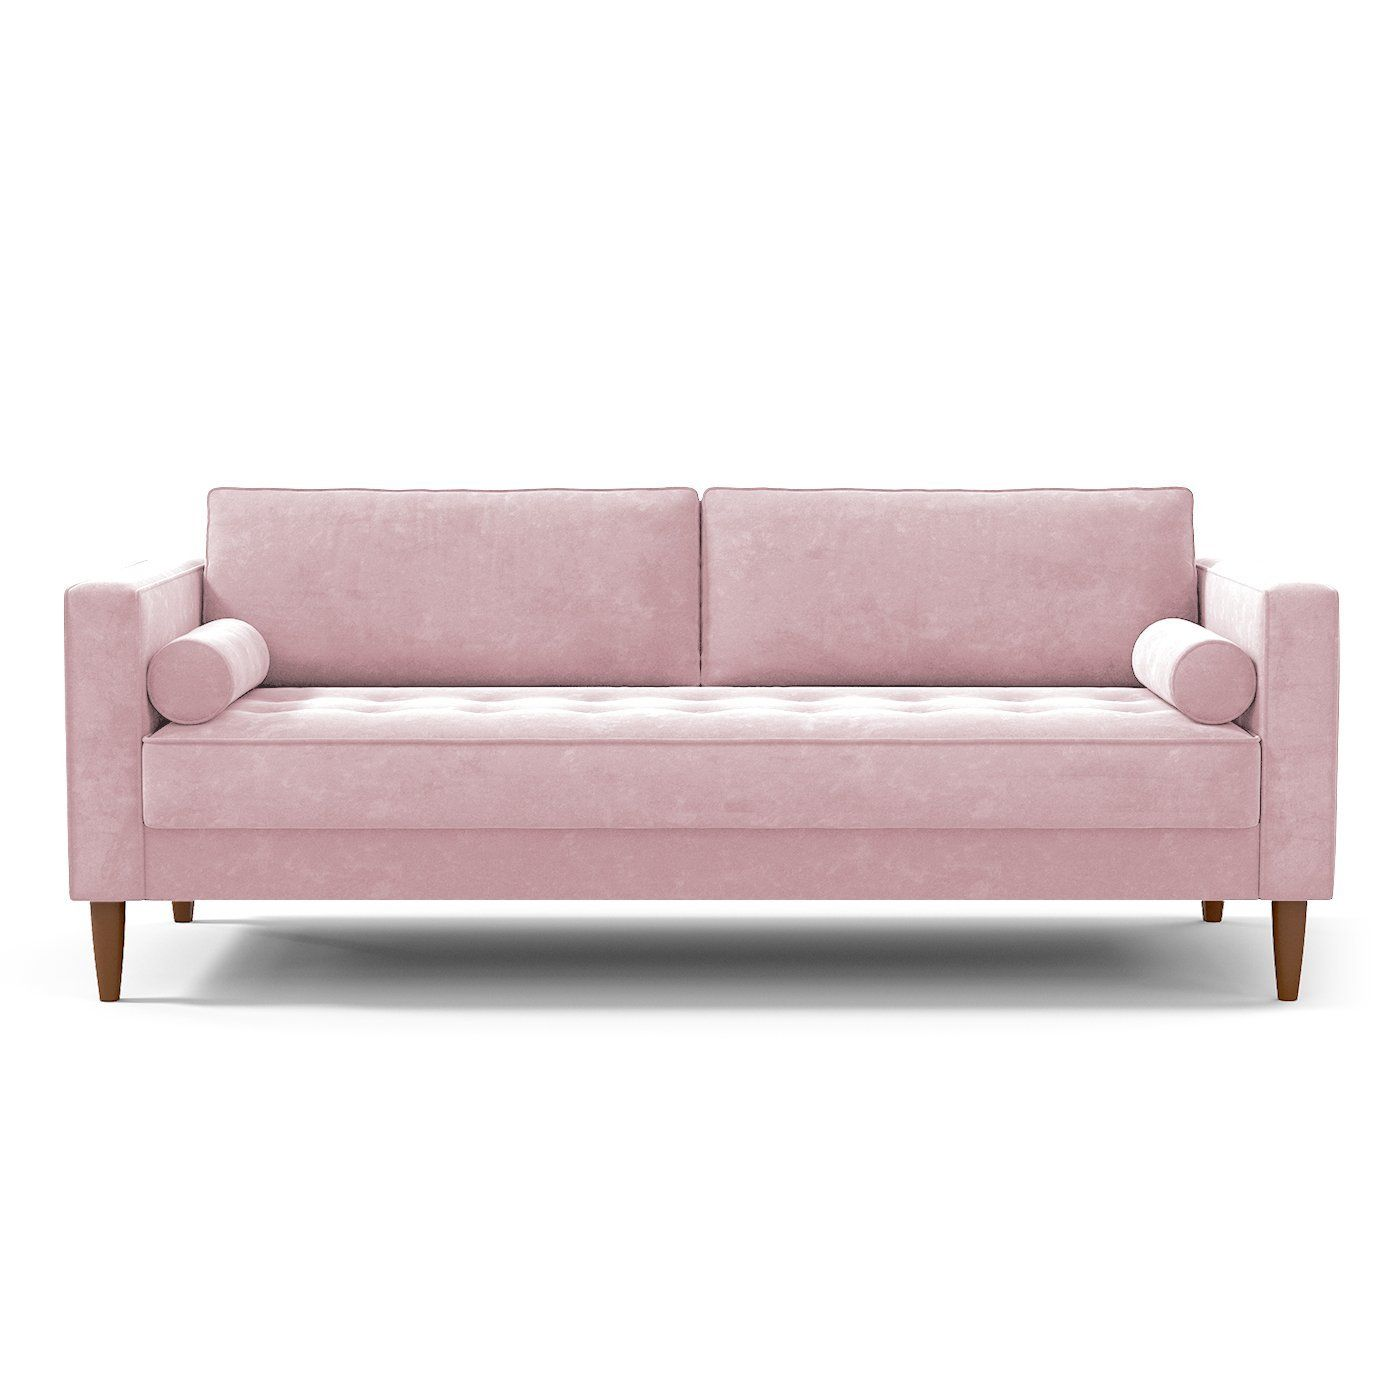 Buy Sofa Bed Online 16 Best Online Furniture Stores Best Websites For Buying Furniture